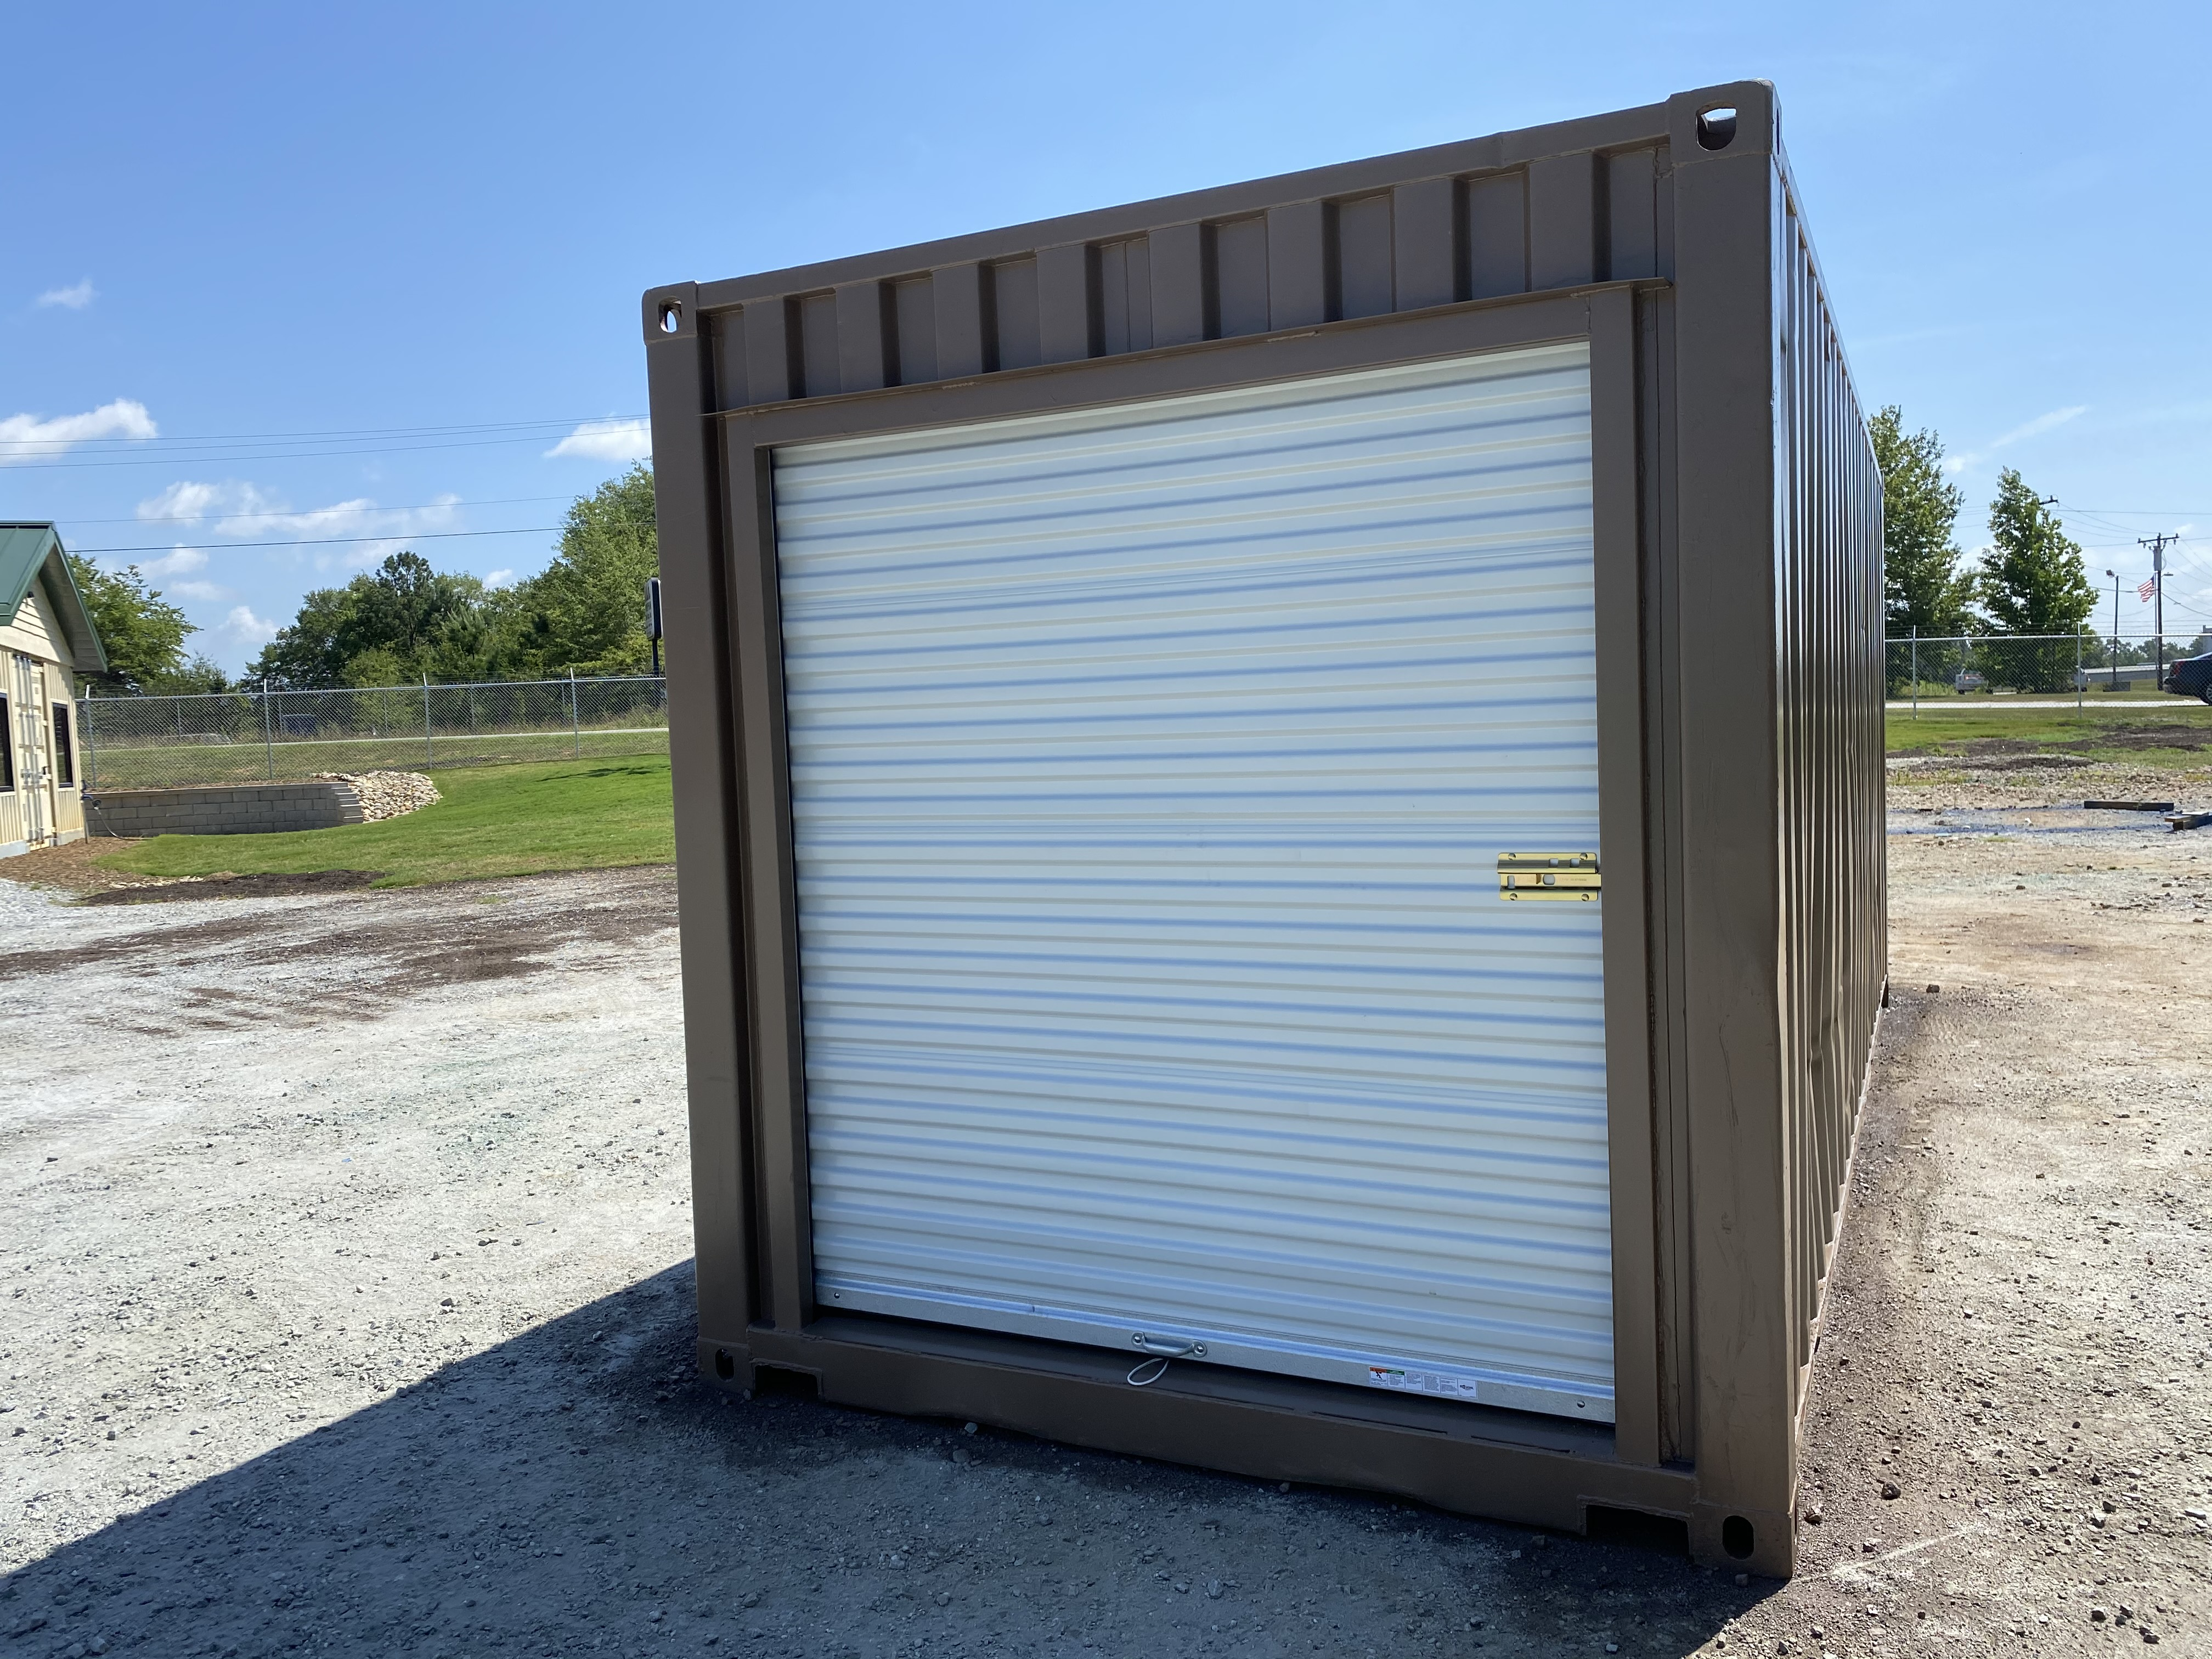 Storage container with roll up door after modification